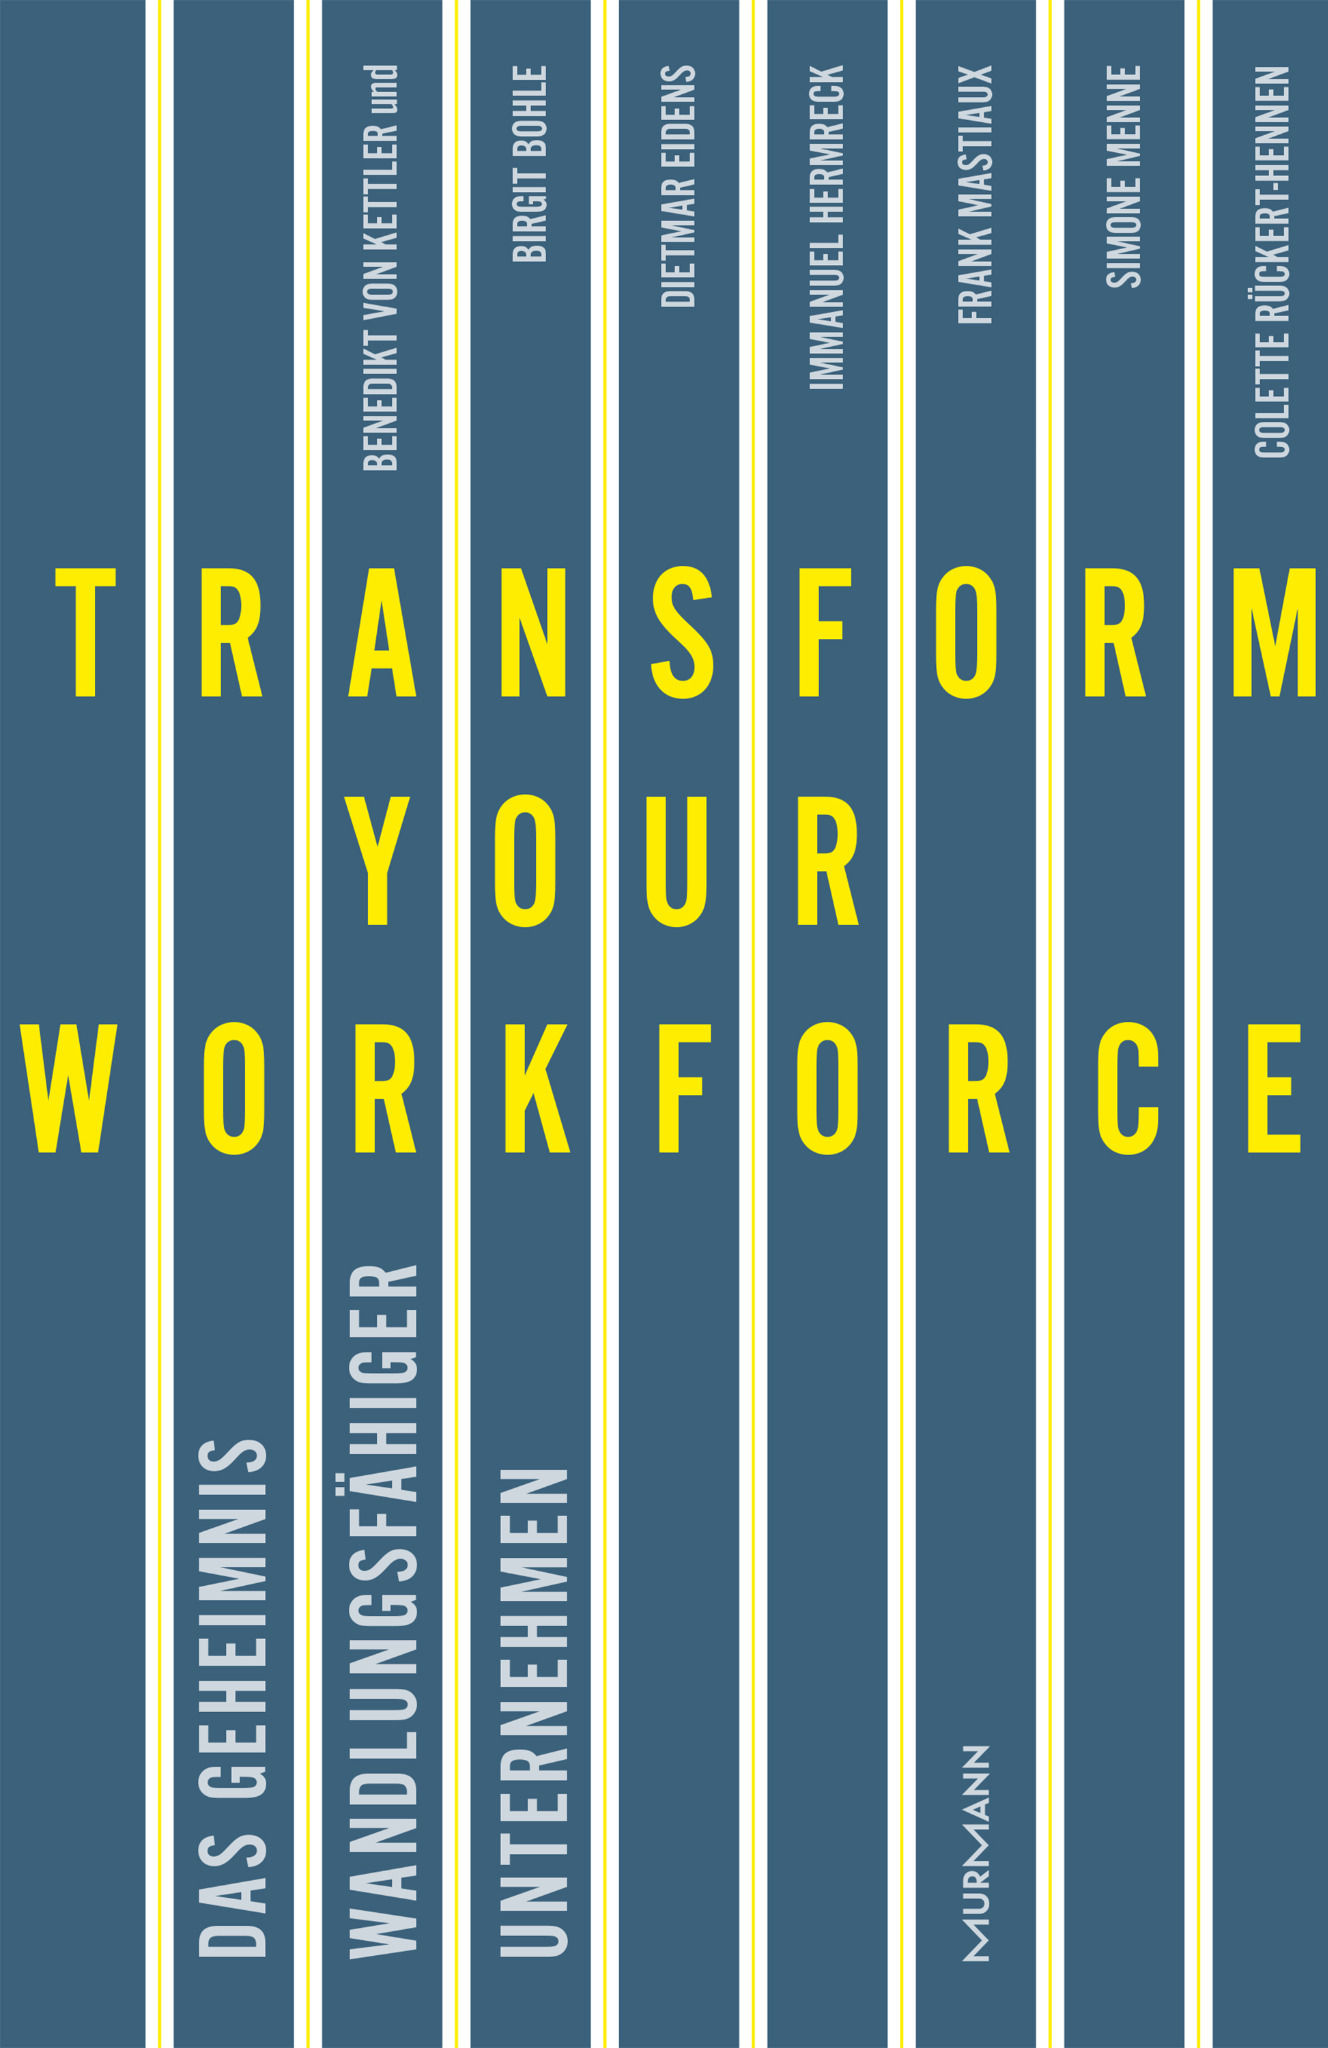 *Transform your Workforce! / Benedikt von Kettler (E-Book)